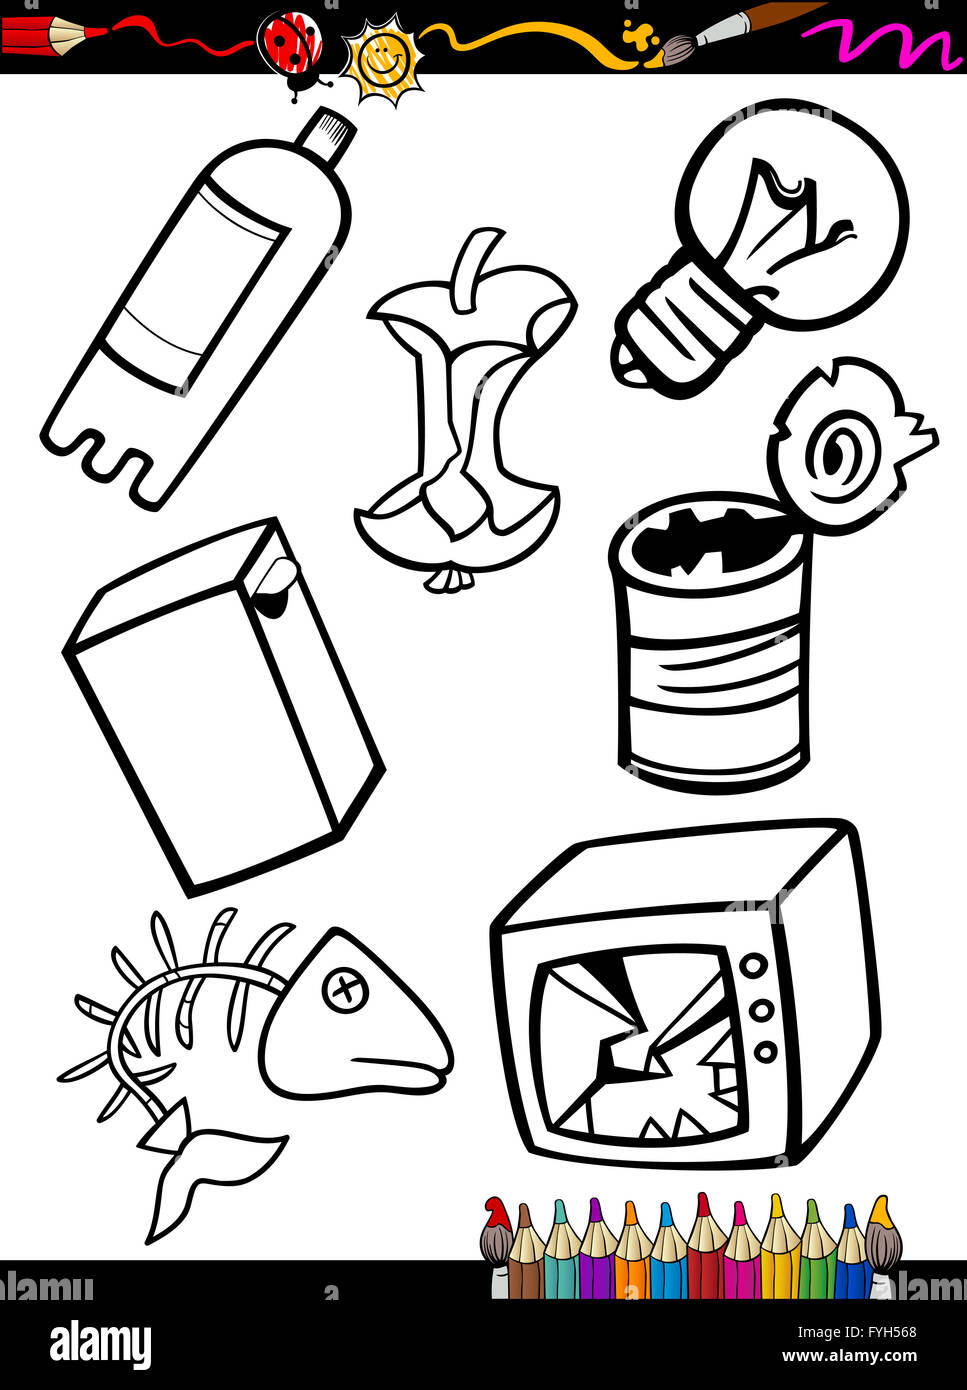 trash can coloring pages - photo#17